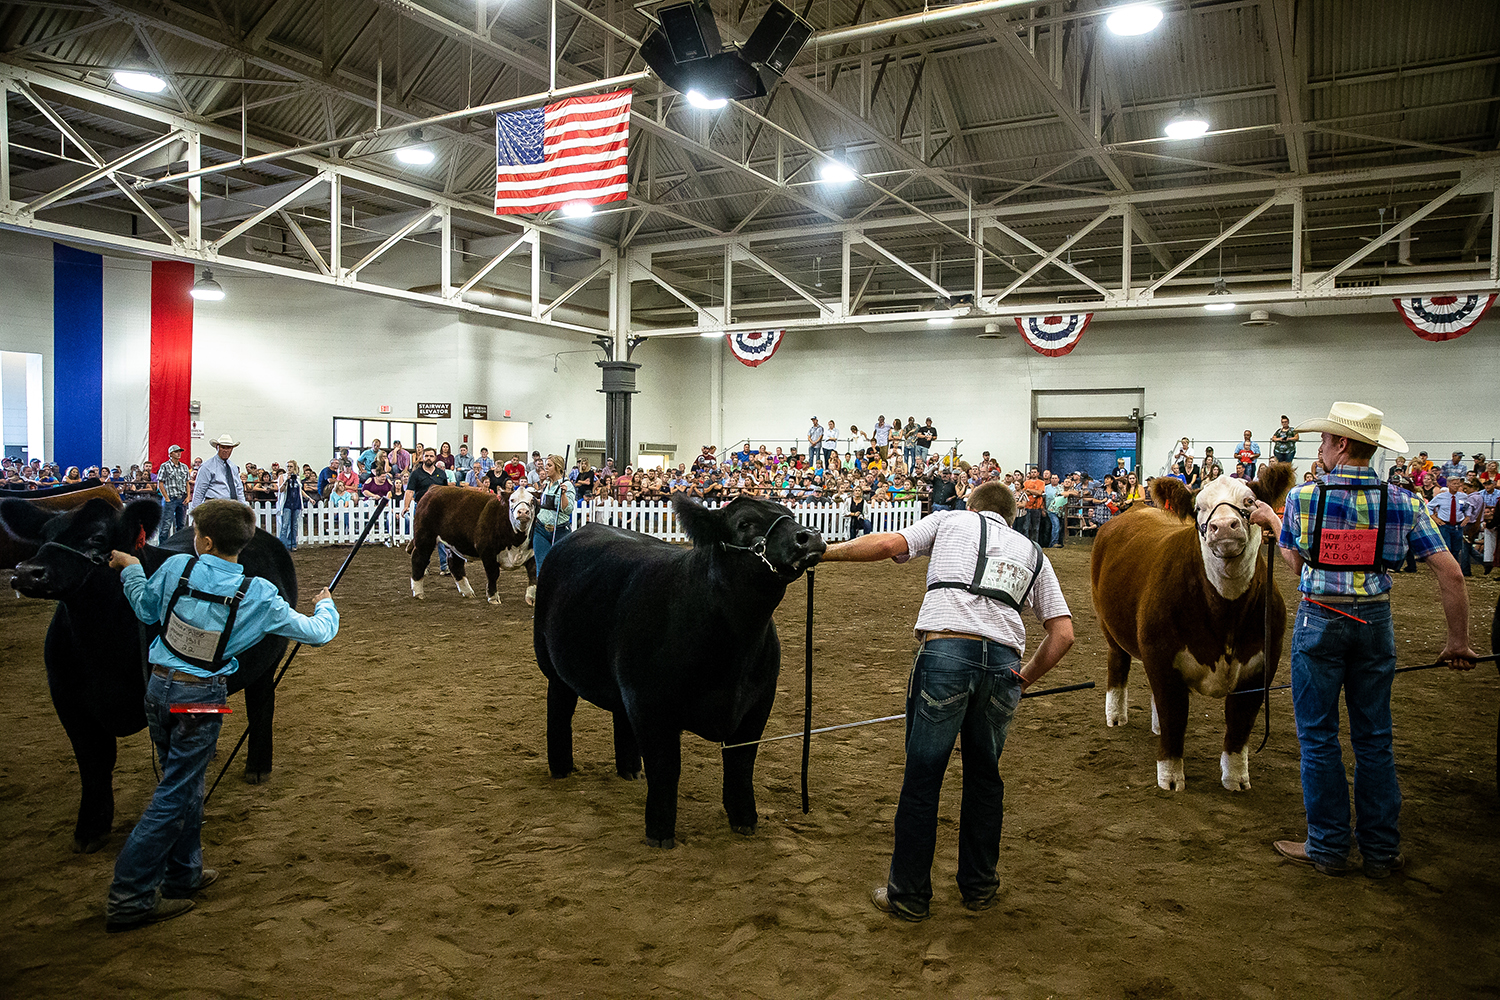 The steers are brought into the show floor for judging during the Parade of Champions at the Livestock Center during the Illinois State Fair at the Illinois State Fairgrounds, Saturday, Aug. 11, 2018, in Springfield, Ill. [Justin L. Fowler/The State Journal-Register]